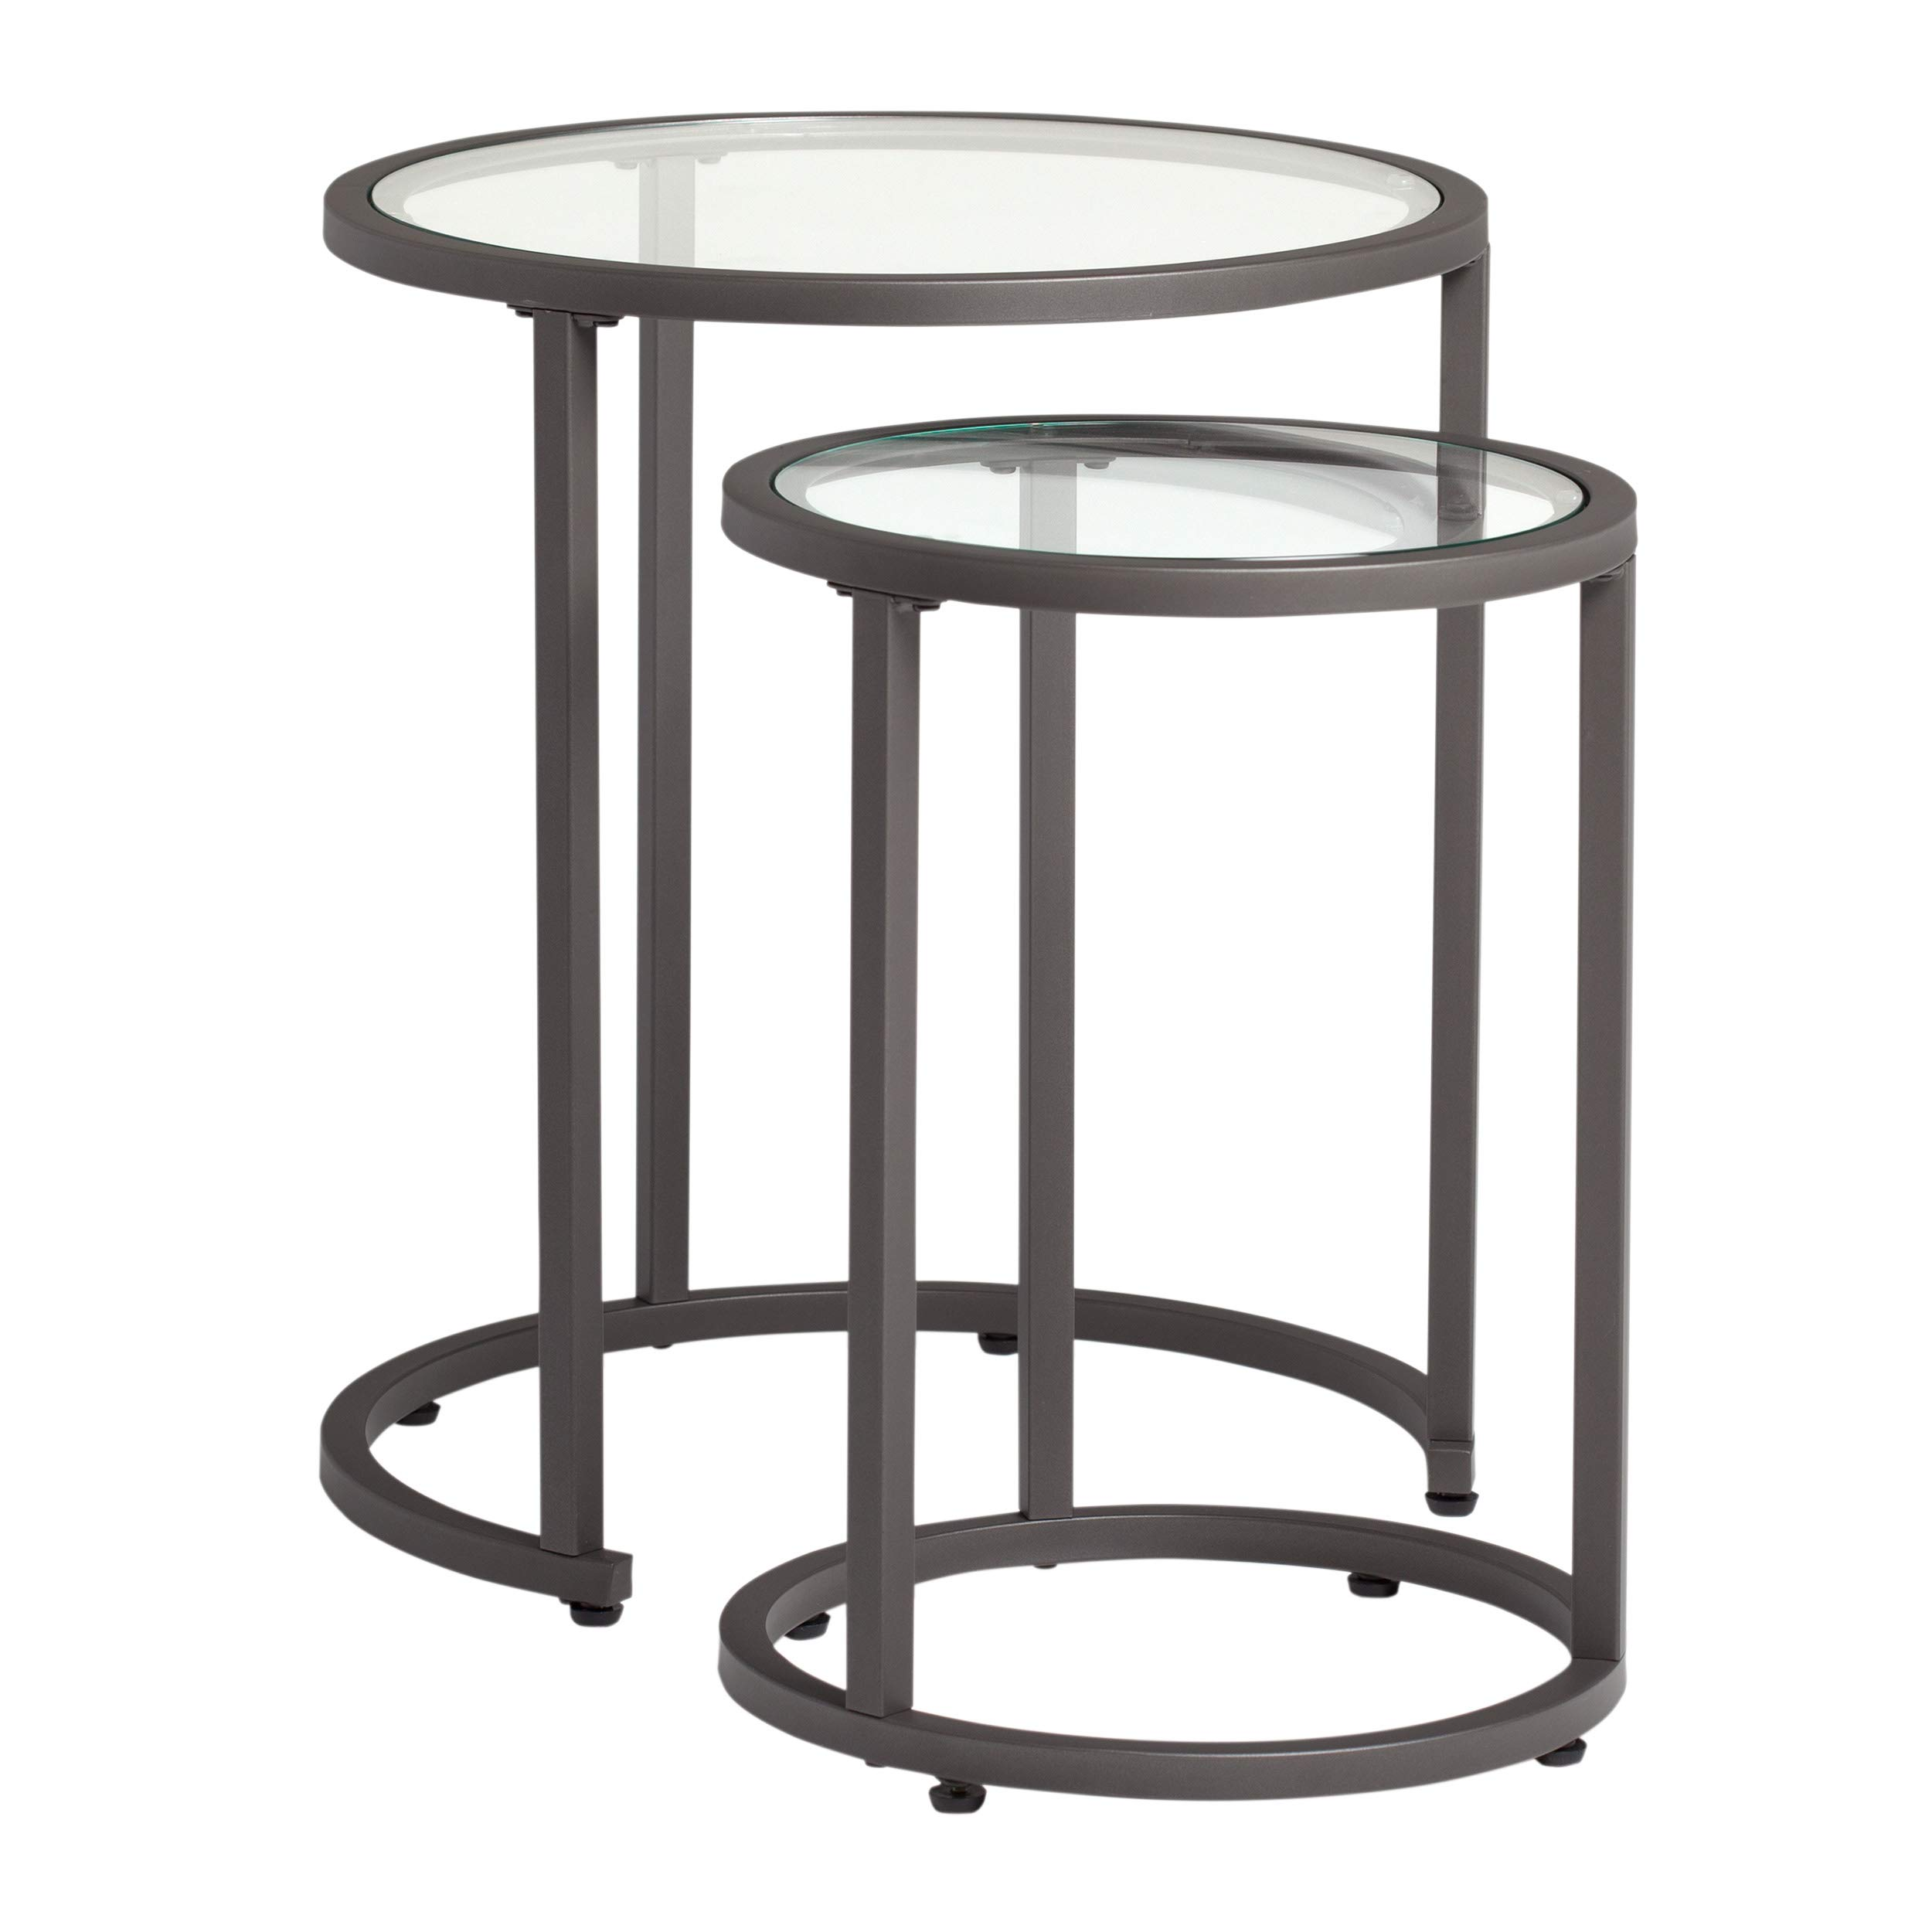 Studio Designs Home Camber Nesting Tables Metal and Glass Side Tables by Studio Designs Home